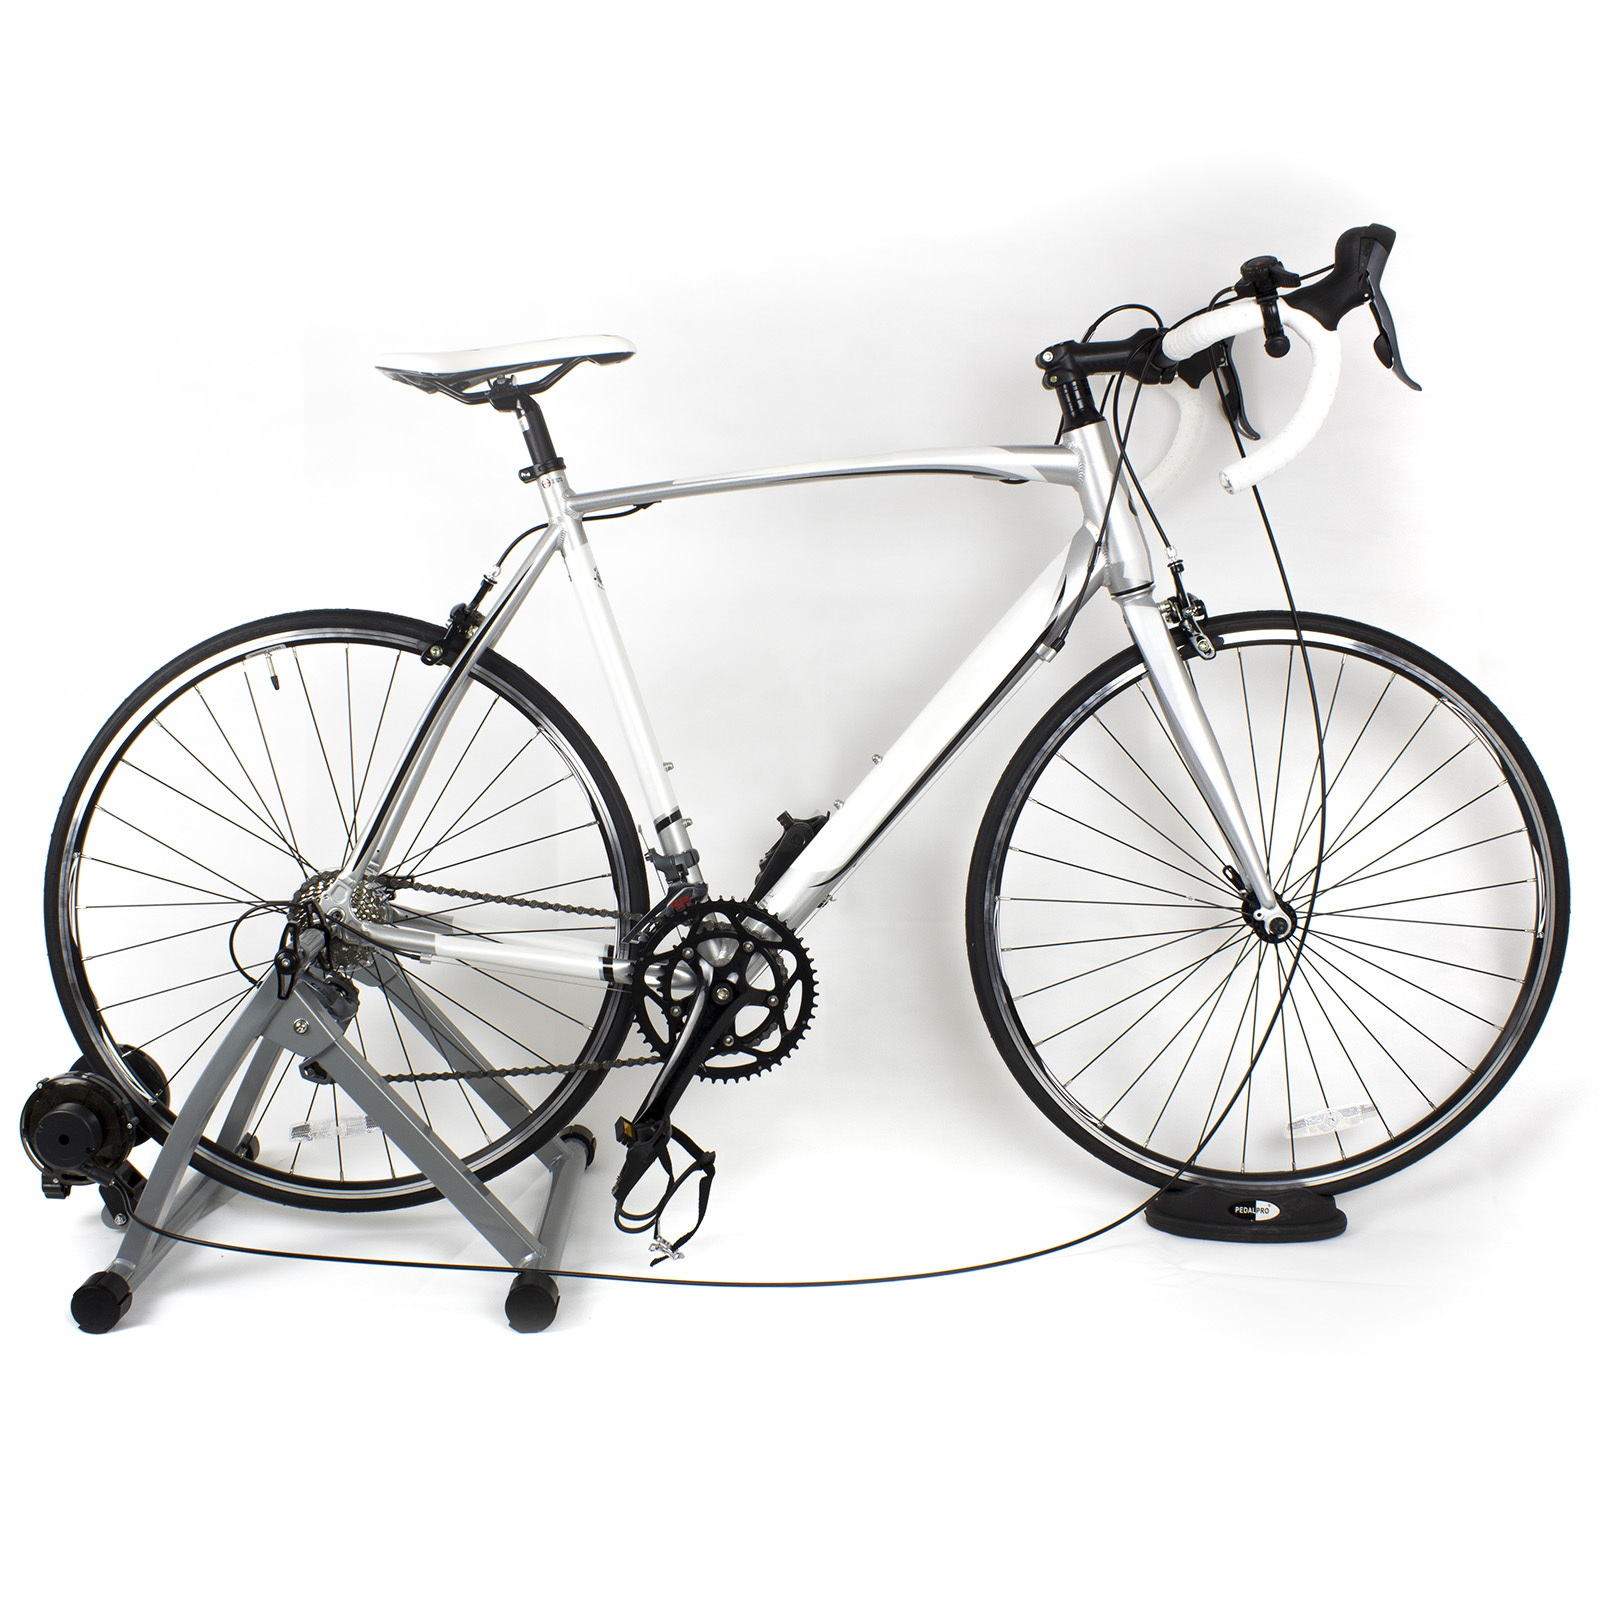 Turbo Bike Pic: PEDALPRO VARISPEED TURBO CYCLE TRAINER INDOOR EXERCISE